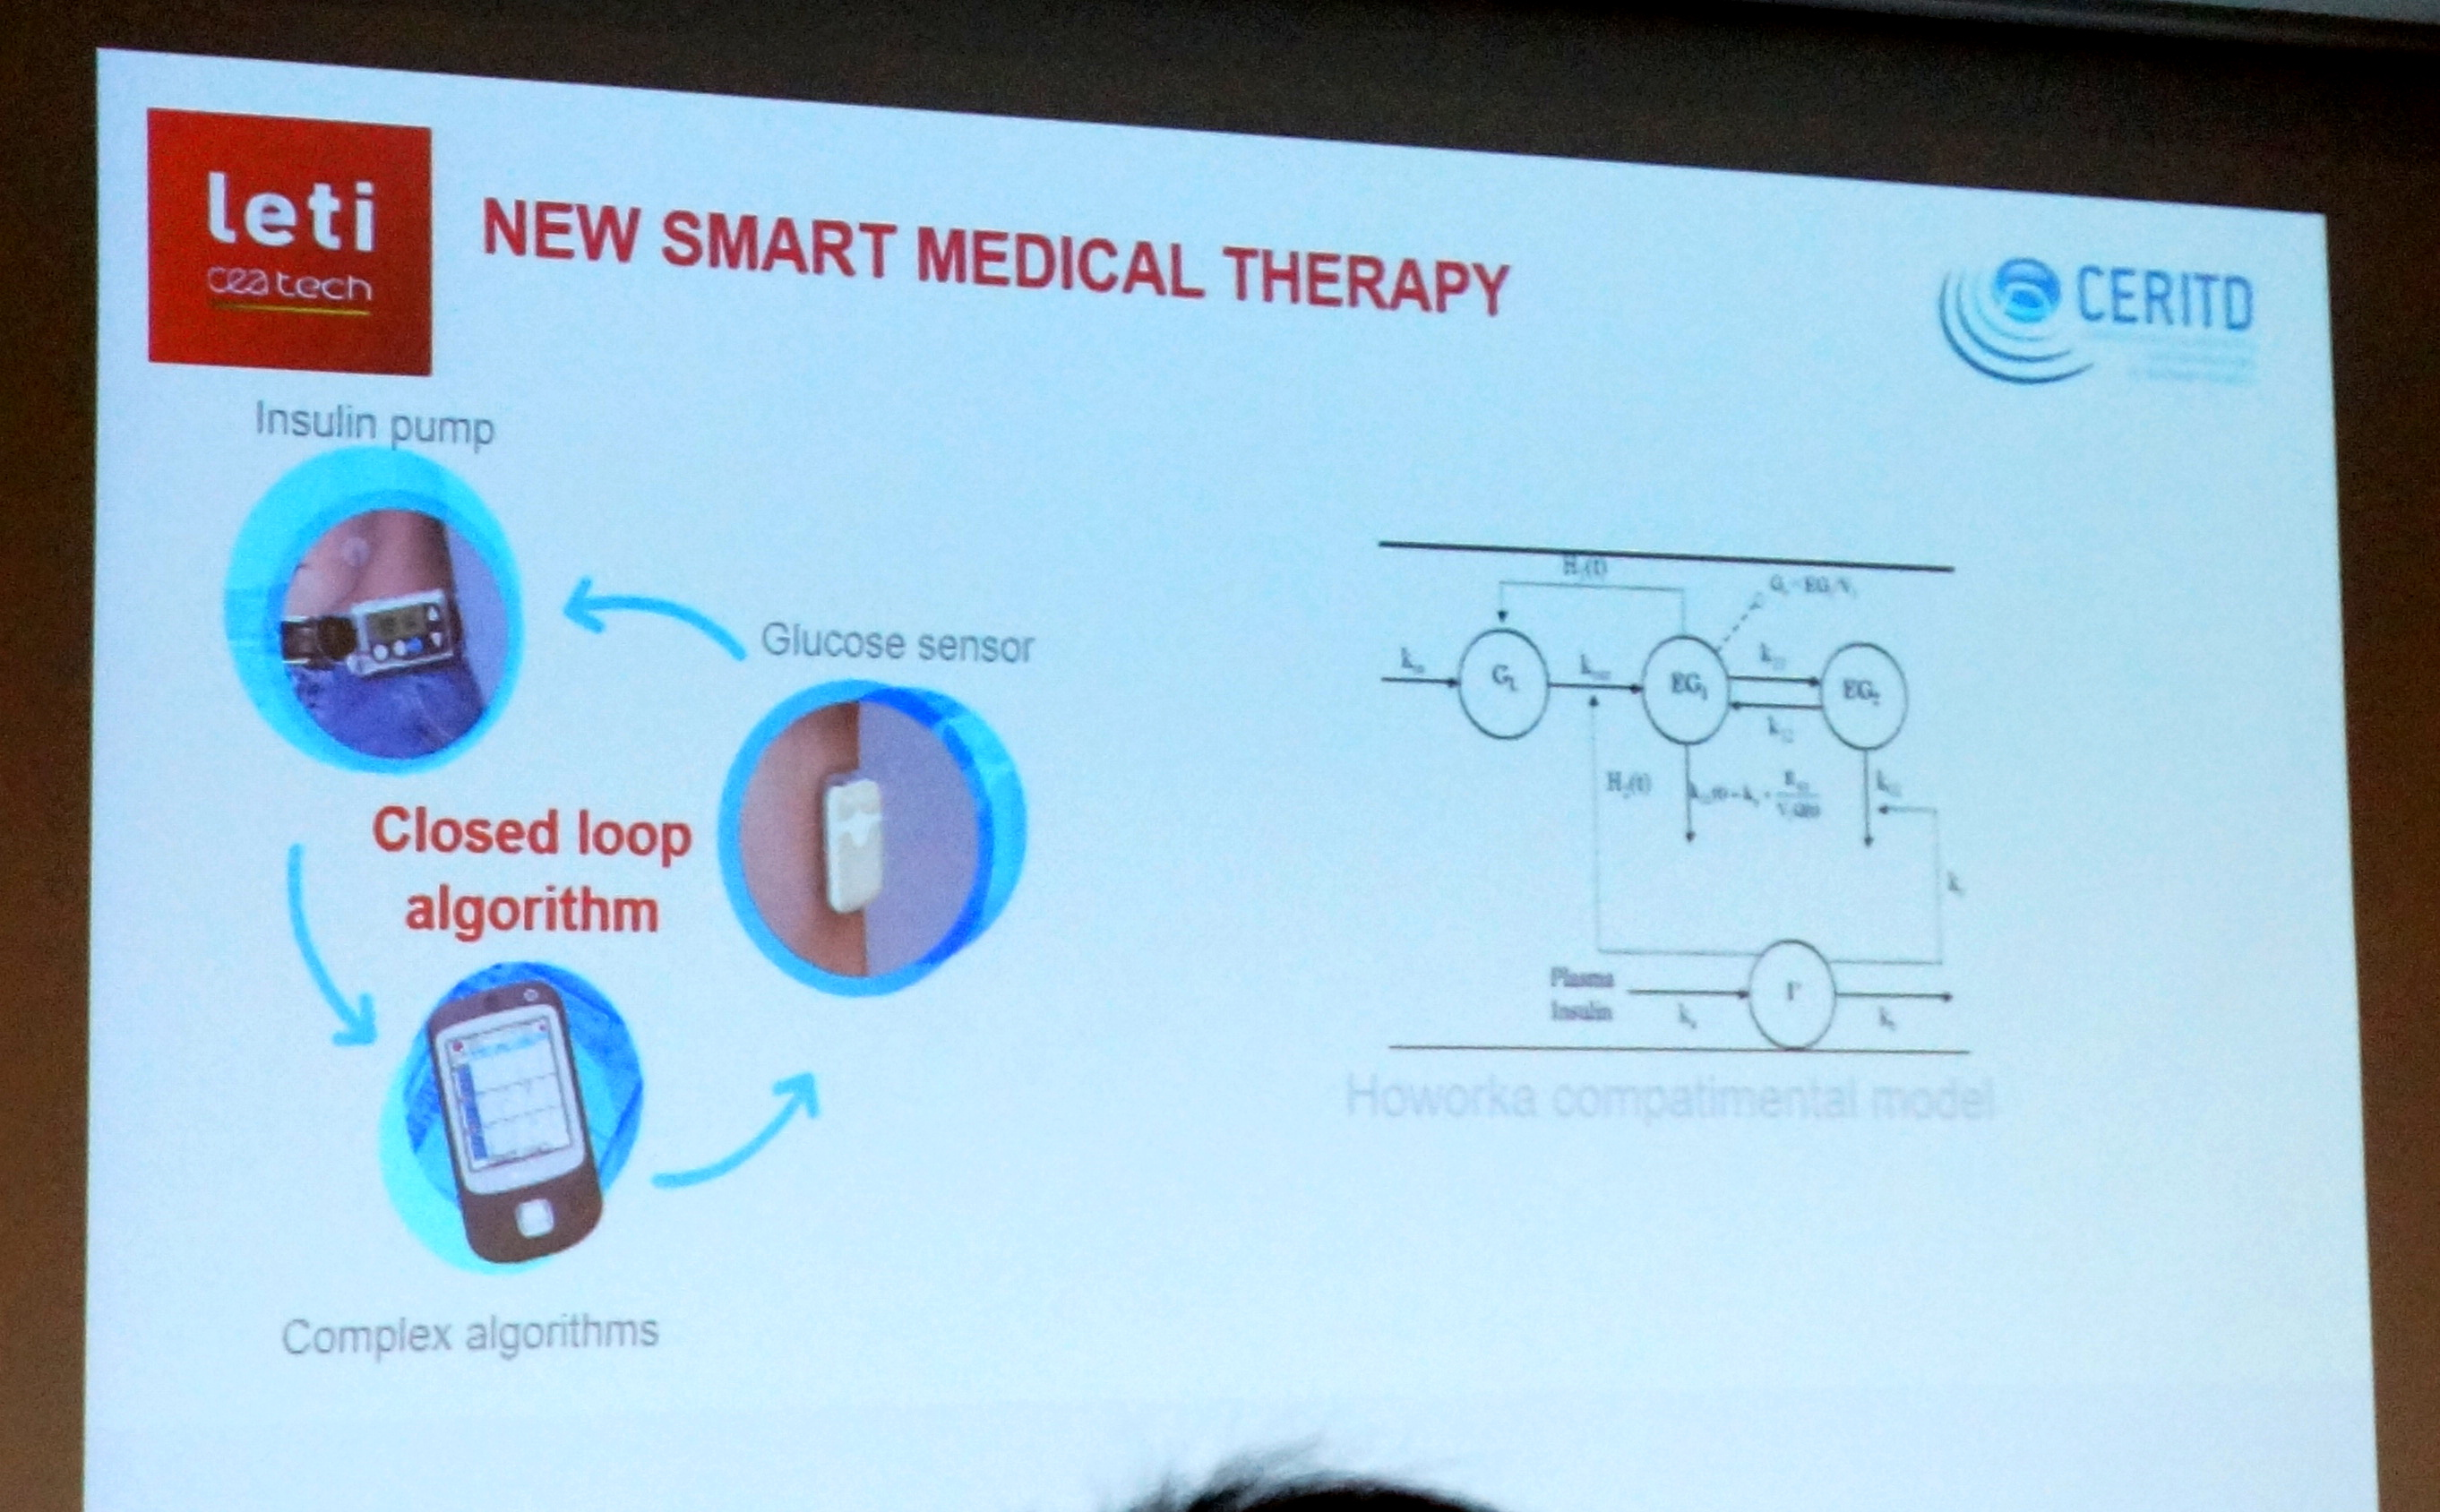 Leti-smart-medical-therapy